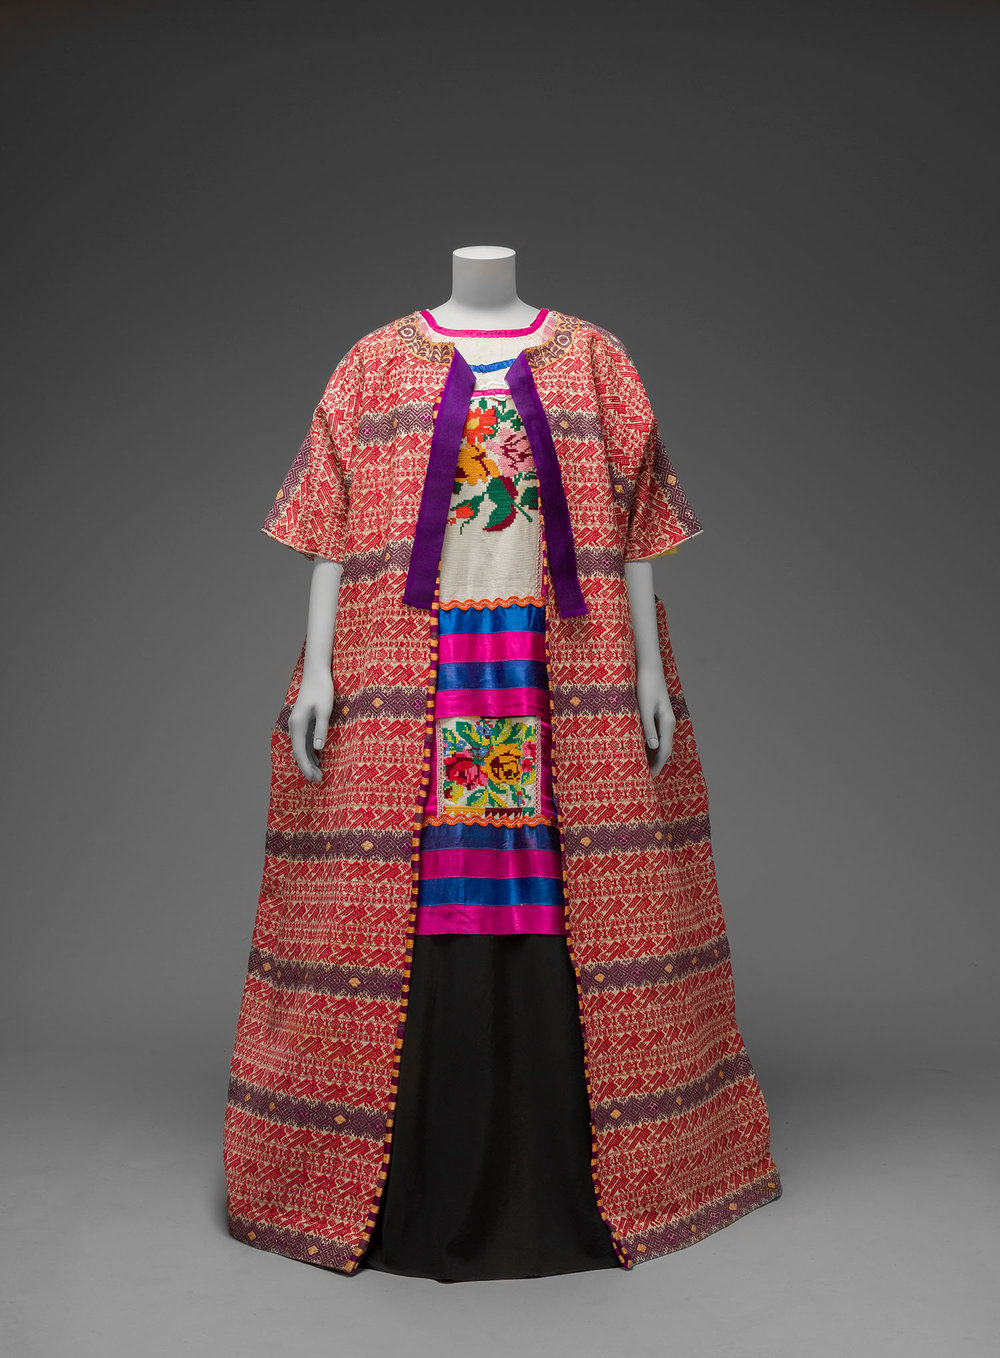 Guatemalan cotton coat worn with Mazatec huipil and plain floor- length skirt. Museo Frida Kahlo.  Both images © Diego Rivera and Frida Kahlo Archives, Banco de México, Fiduciary of the Trust of the Diego Riviera and Frida Kahlo Museums.